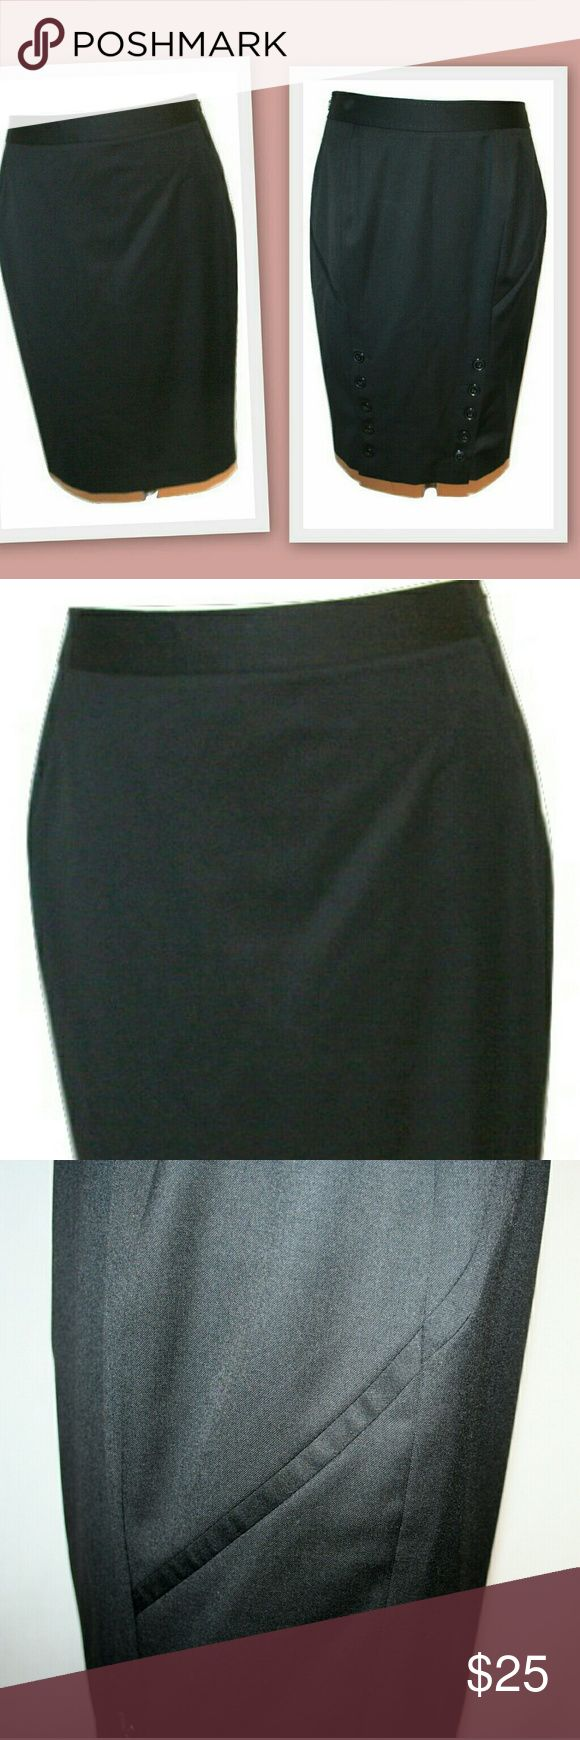 "Ted Baker London wool blend pencil skirt Ted Baker London wool blend pencil skirt. This sexy skirt has double back vents with logoed buttons. Side invisible zipper.  Lined. Pick stitching on the waistband.   65% wool 35% polyester   Size 2 Waist 30 1/2"" Hips 37"" Length 23"" Ted Baker London Skirts Pencil"